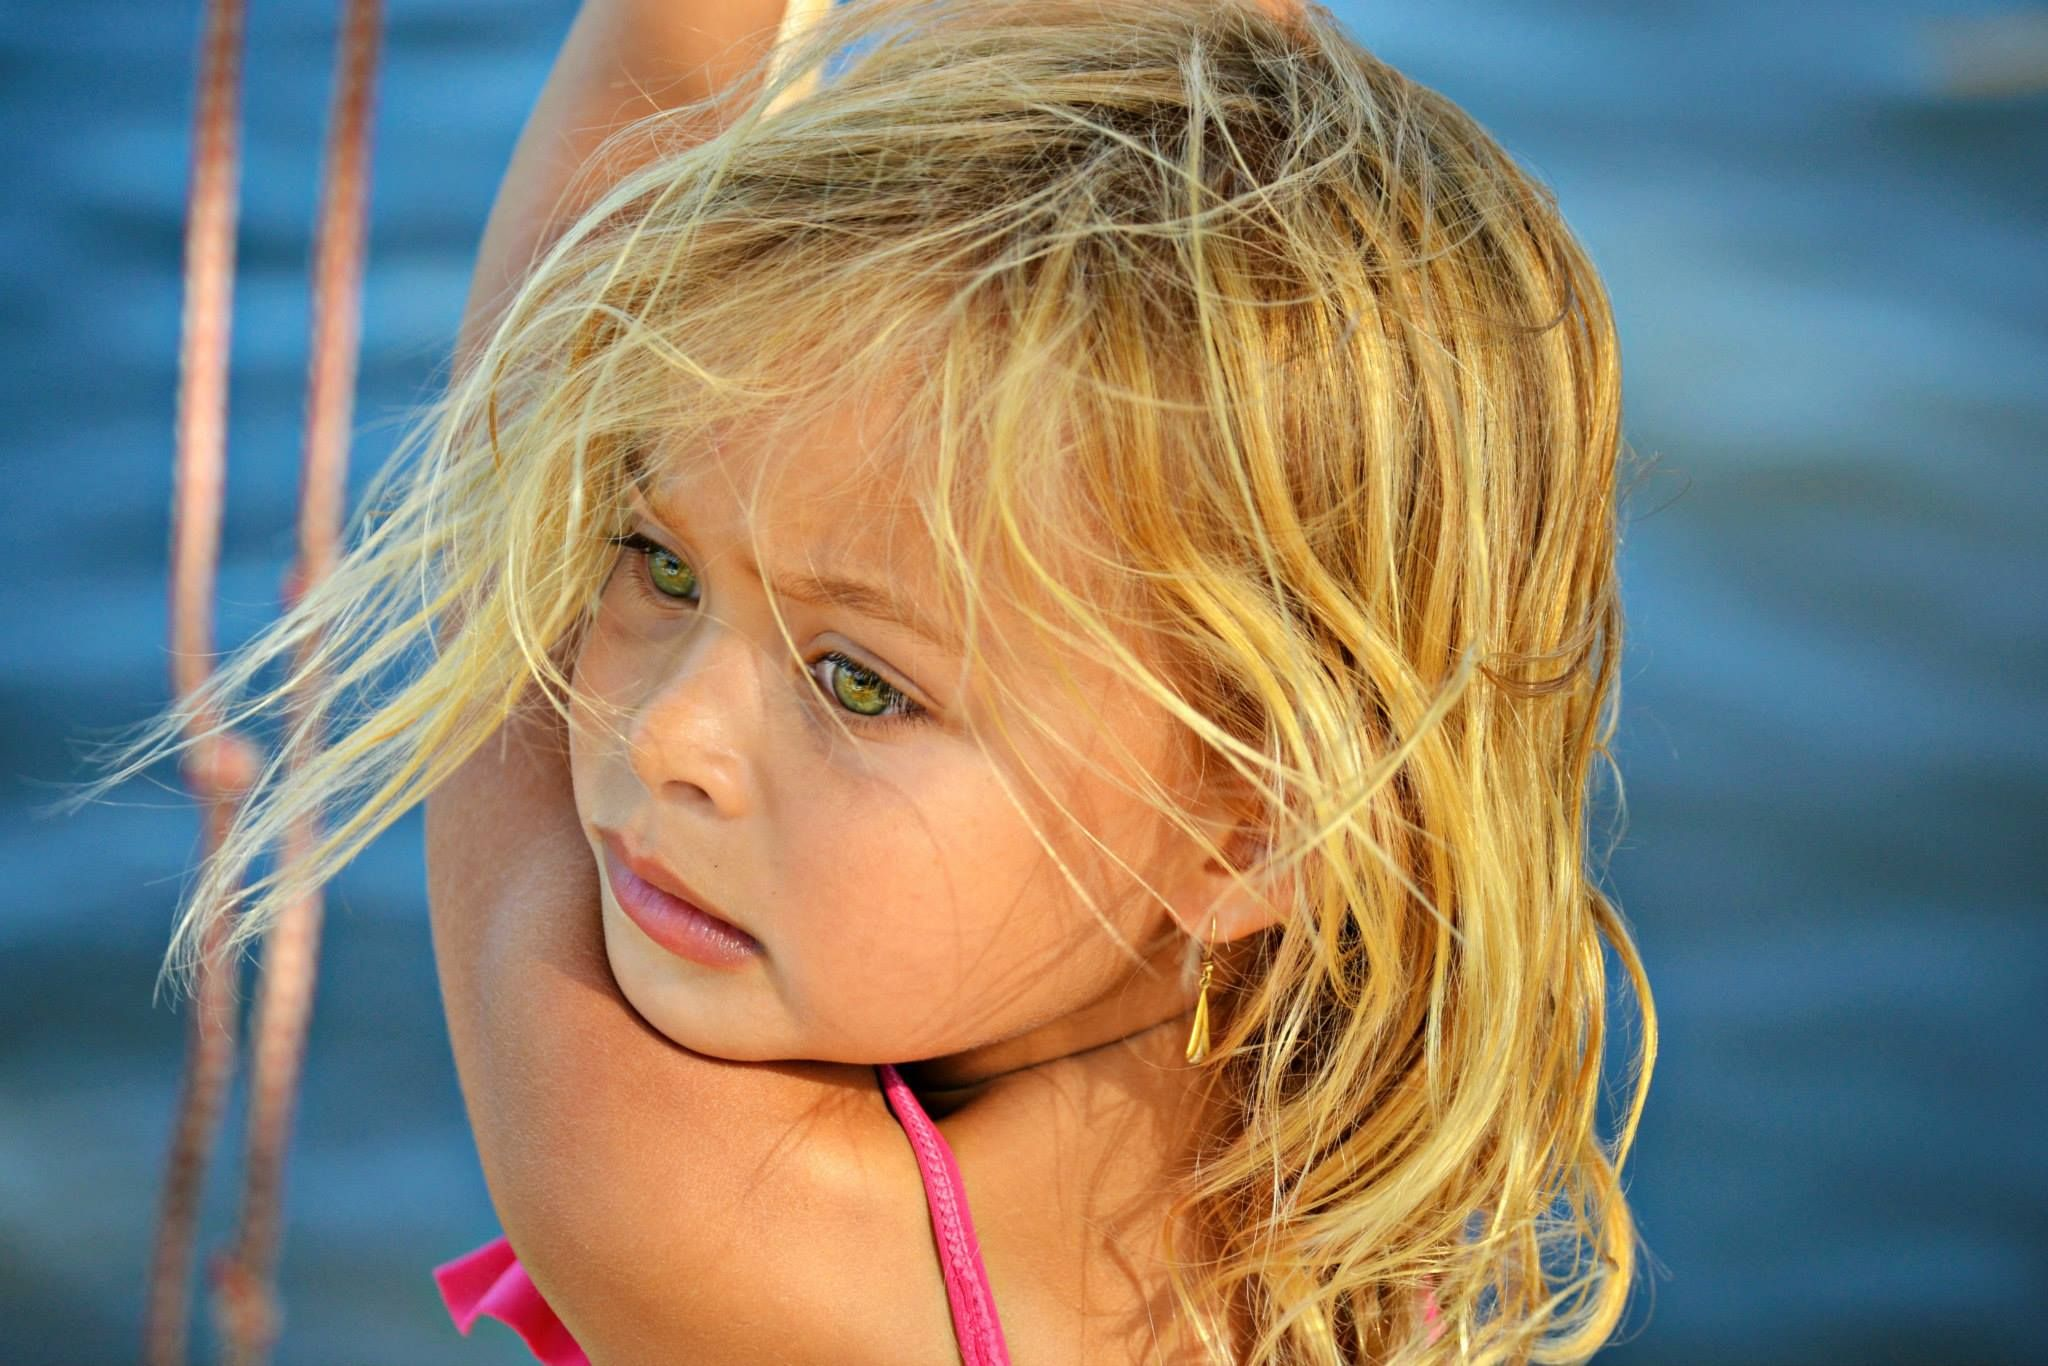 Beautiful Child With Blonde Hair Green Eyes And Tanned Skin